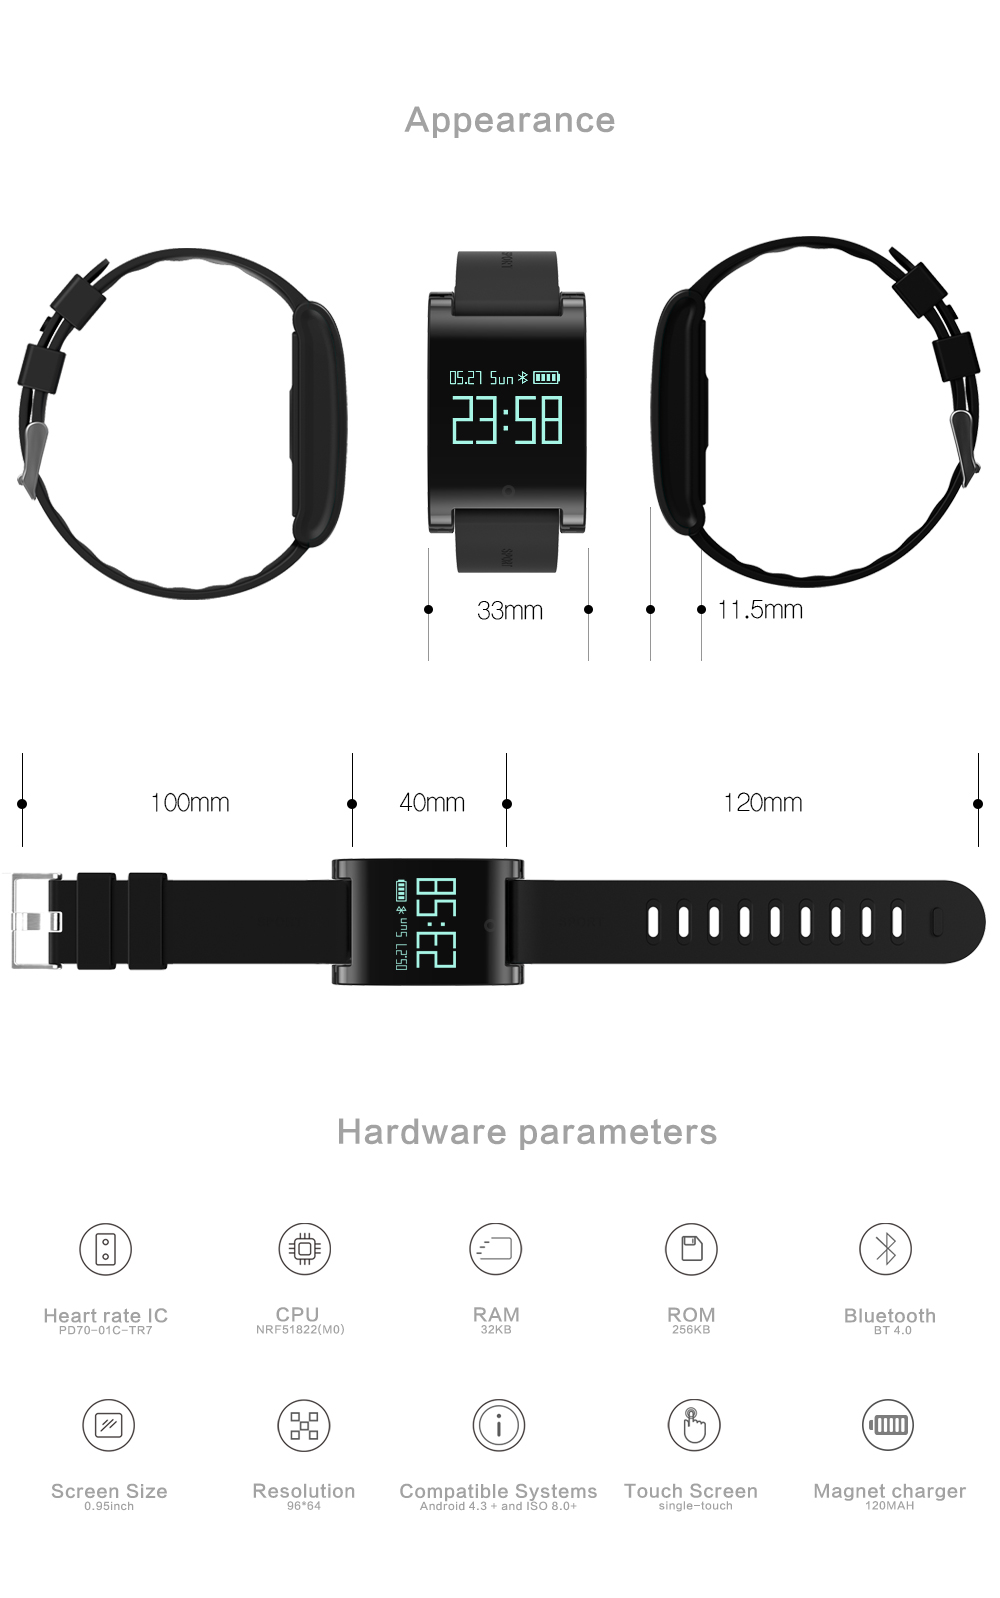 LEMDIOE DM68 waterproof smart band wristband fitness tracker Blood Pressure heart rate monitor Calls Messages watch for phone 15